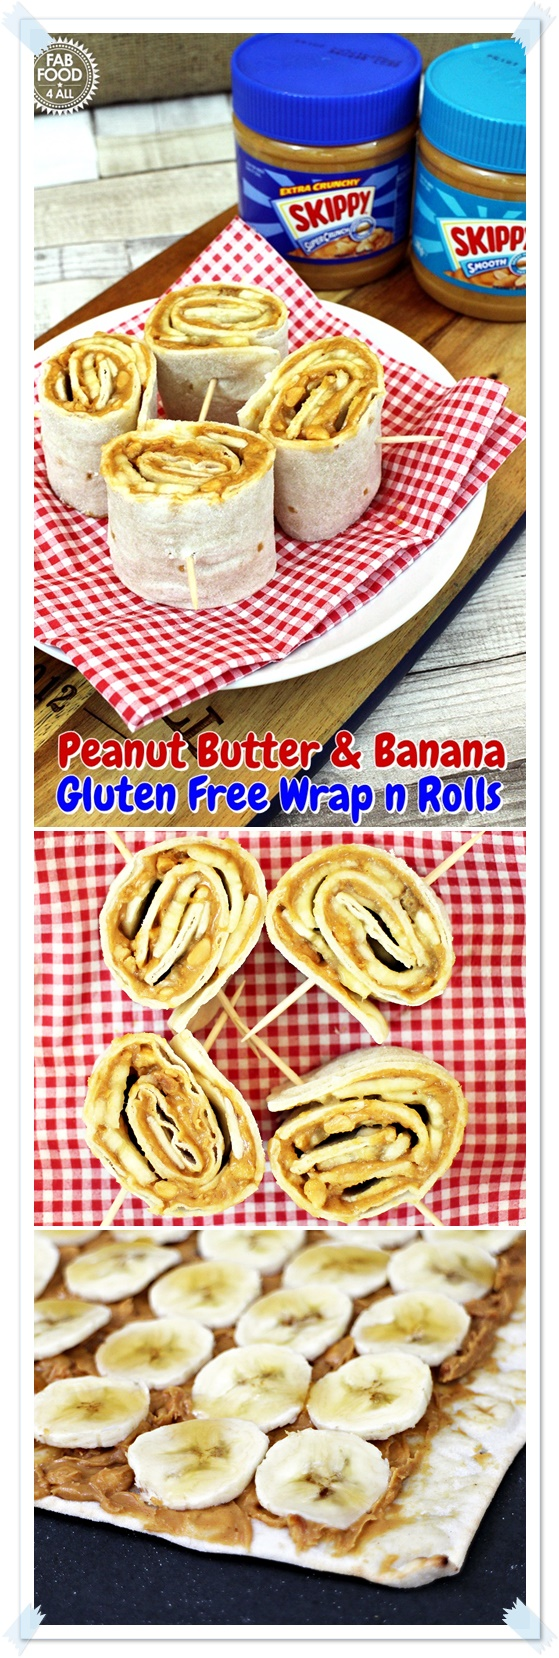 Peanut Butter and Banana Gluten Free Wrap n Rolls